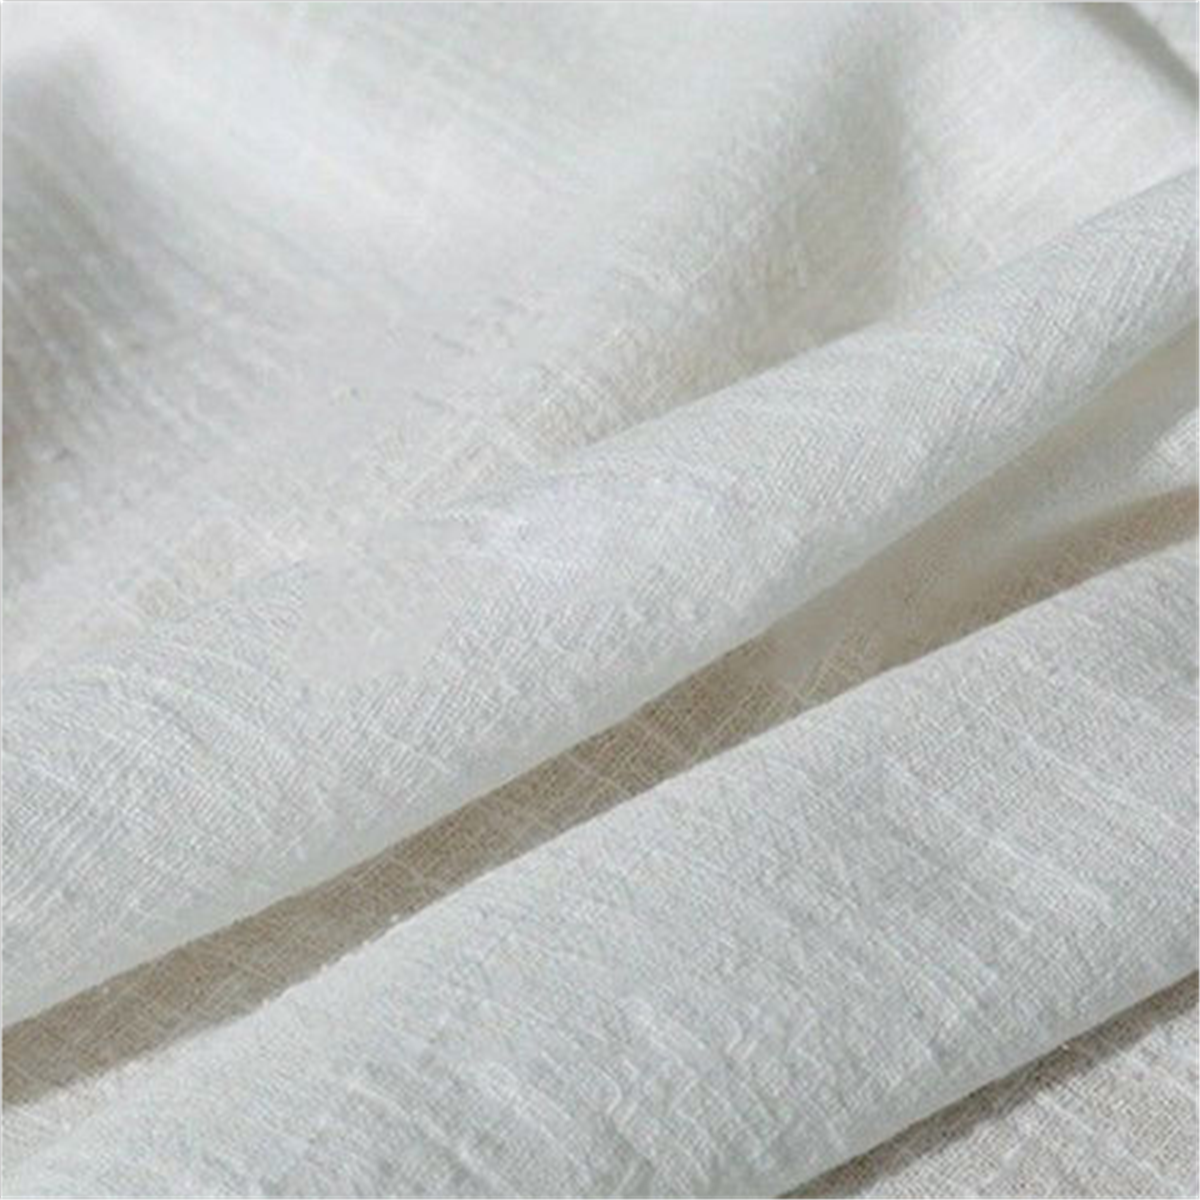 Linen Cotton Fabric,130 x 100 cm Organic Material Pure Natural Flax Cambric Eco DIY Clothes Fabric Soft Cotton Linen Curtain Cloth Handmade